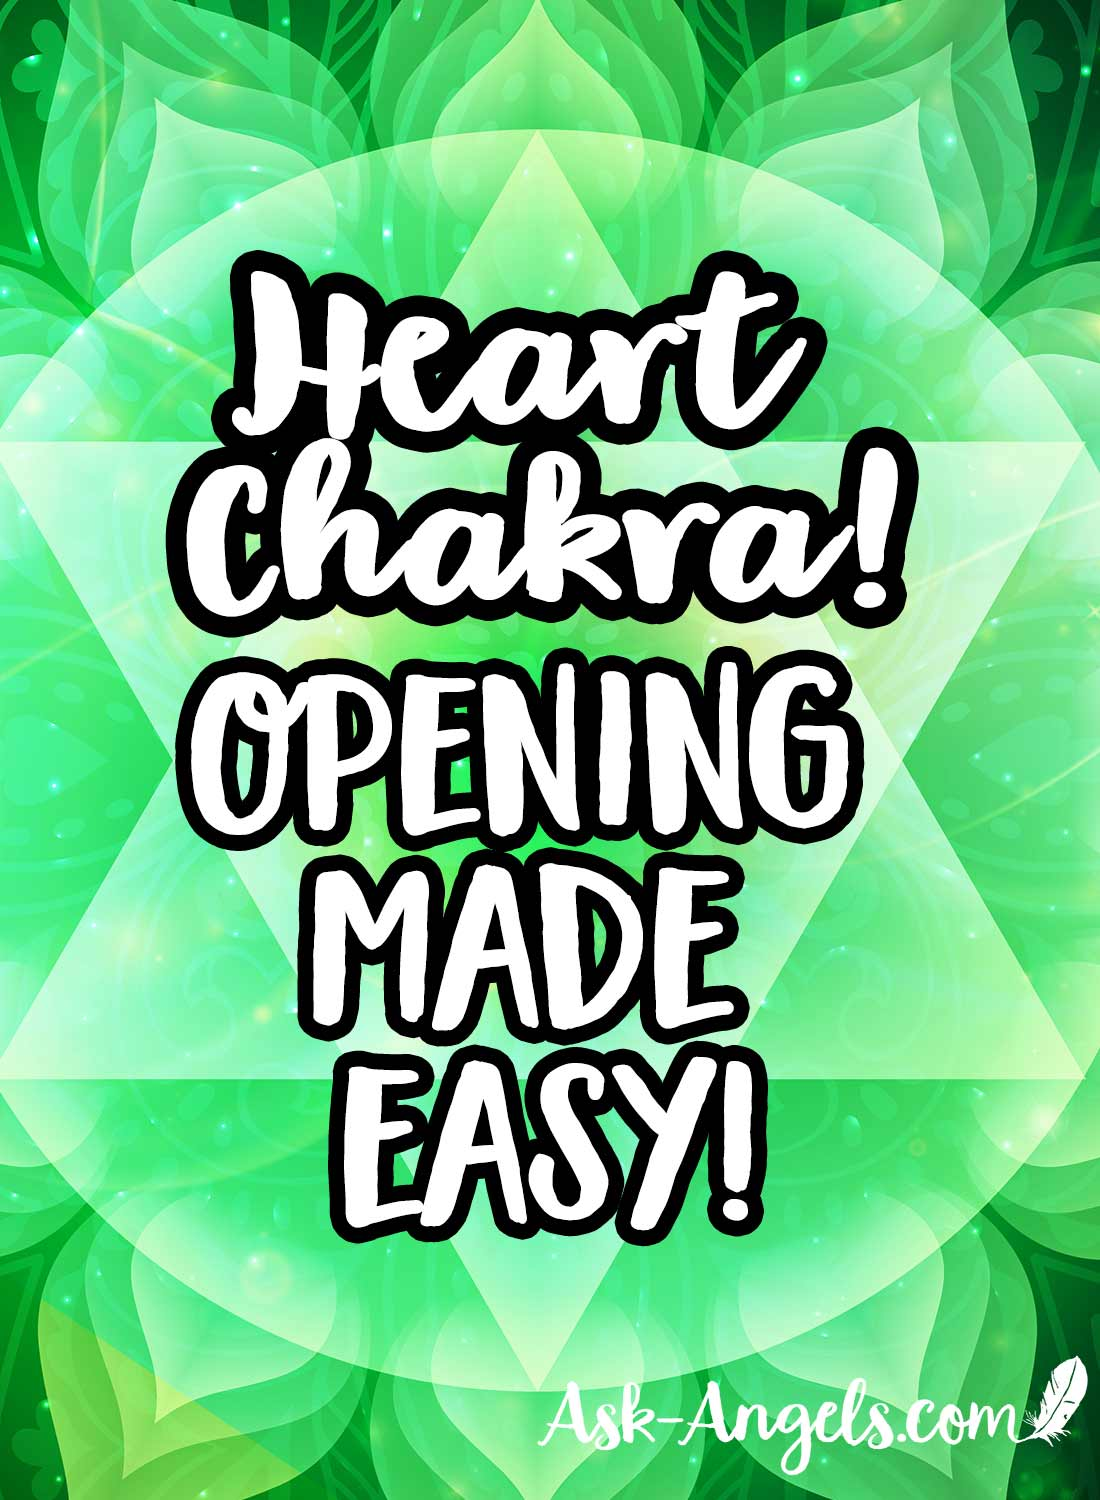 Heart Chakra Opening Made Easy